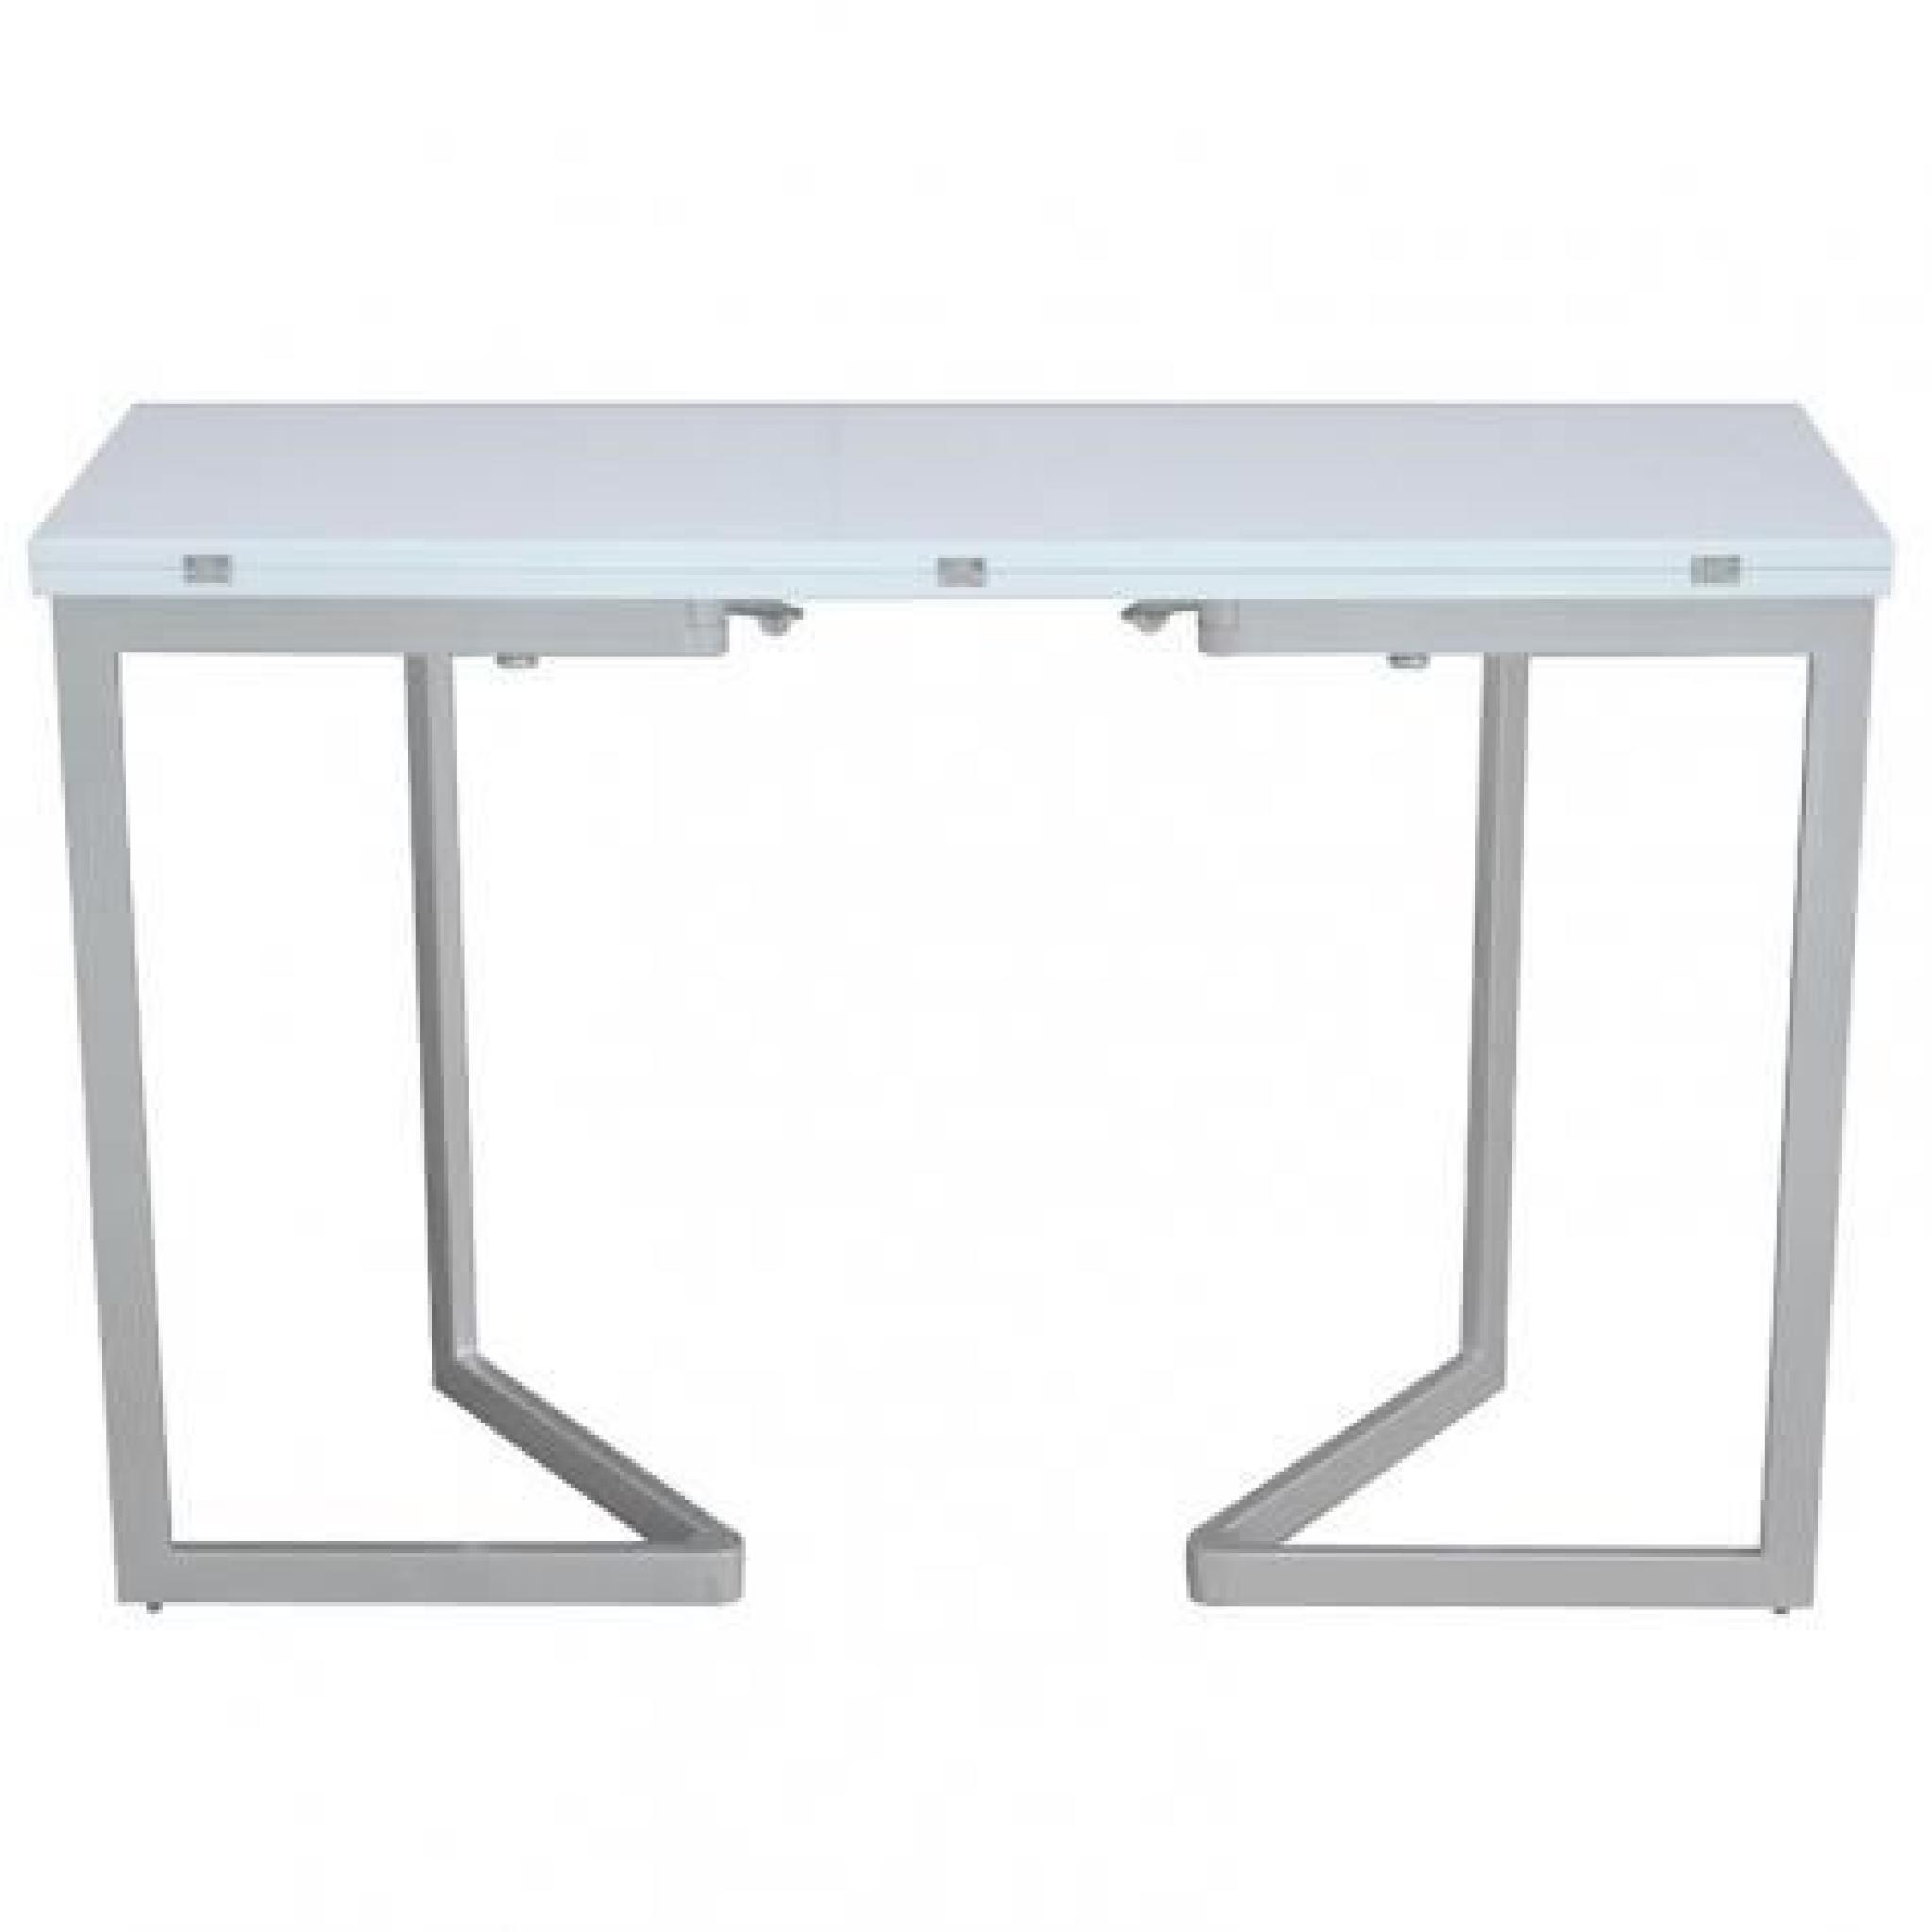 Table console extensible blanche laqu e talia achat for Table salle a manger console extensible